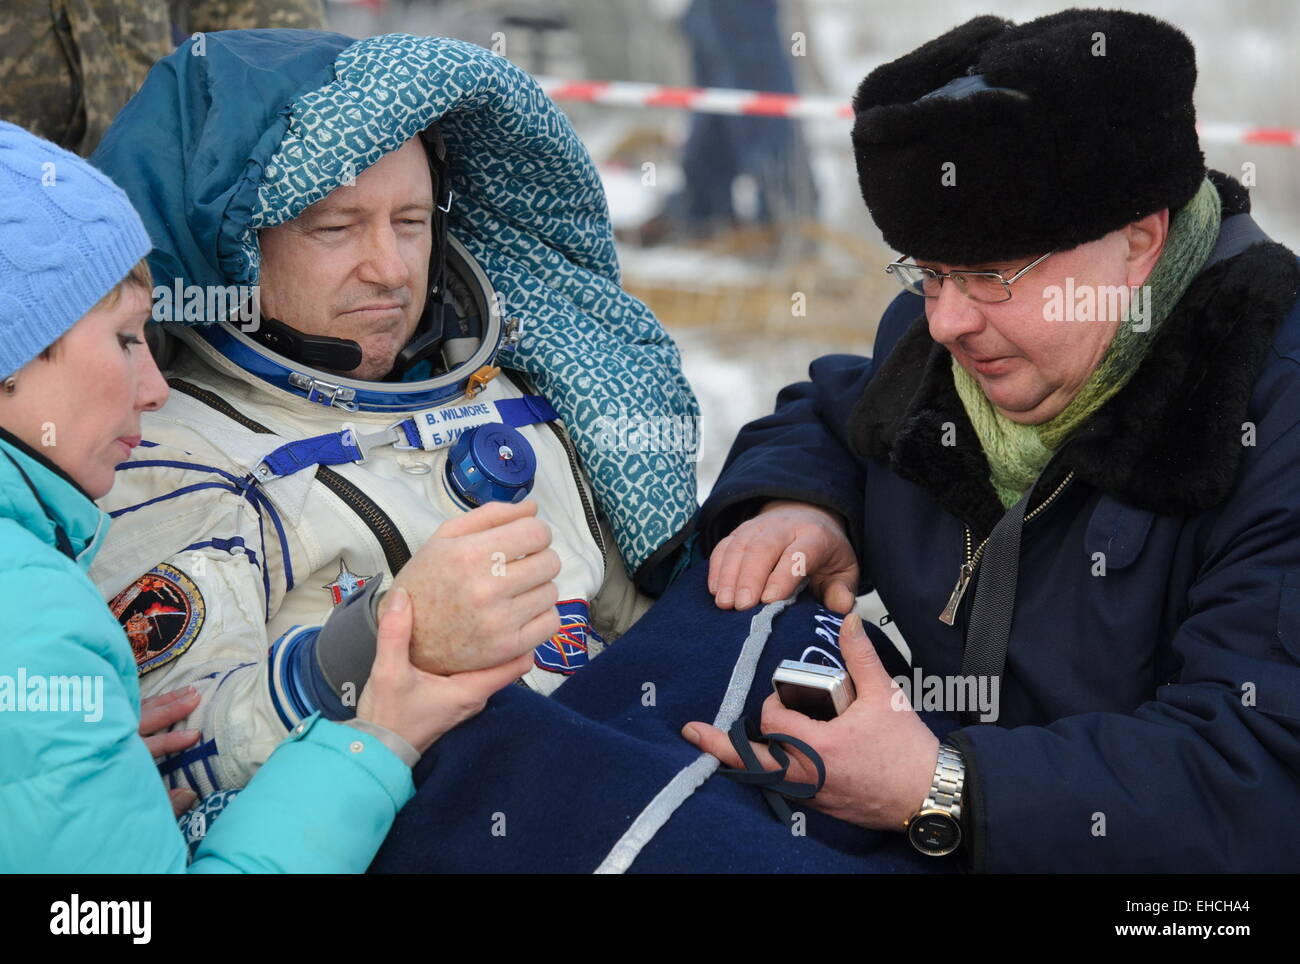 Kazakhstan. 12th March, 2015. ISS Expedition 41/42 crew member, NASA astronaut Barry Wilmore (C) seen after the - Stock Image